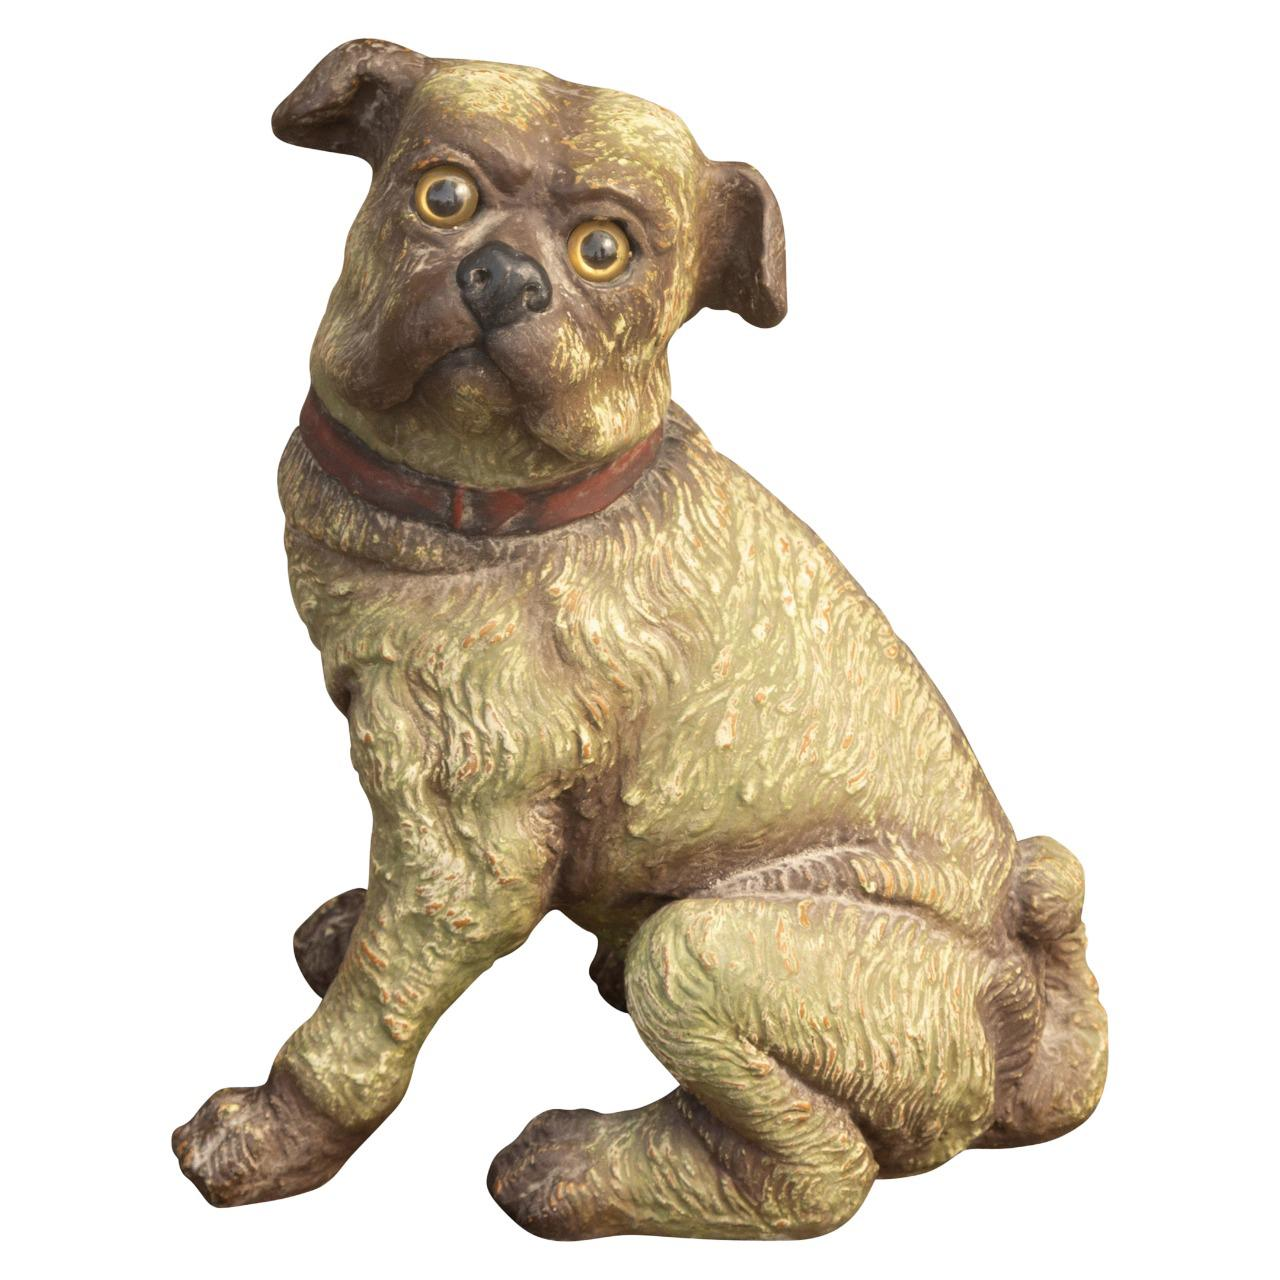 English Vintage Composition Sitting Dog Sculpture with Glass Eyes and Red Collar